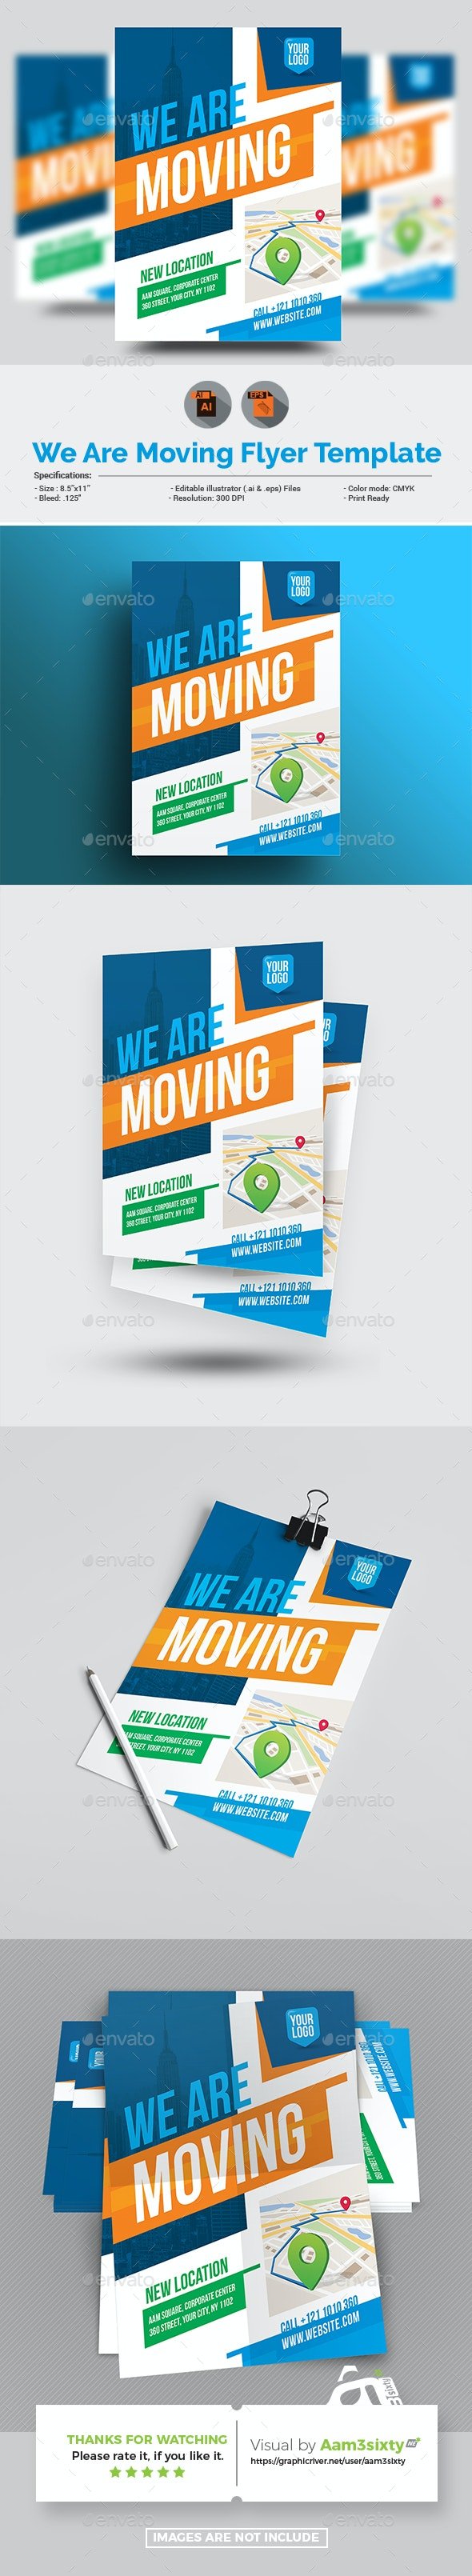 We Are Moving Flyer Template - Corporate Brochures